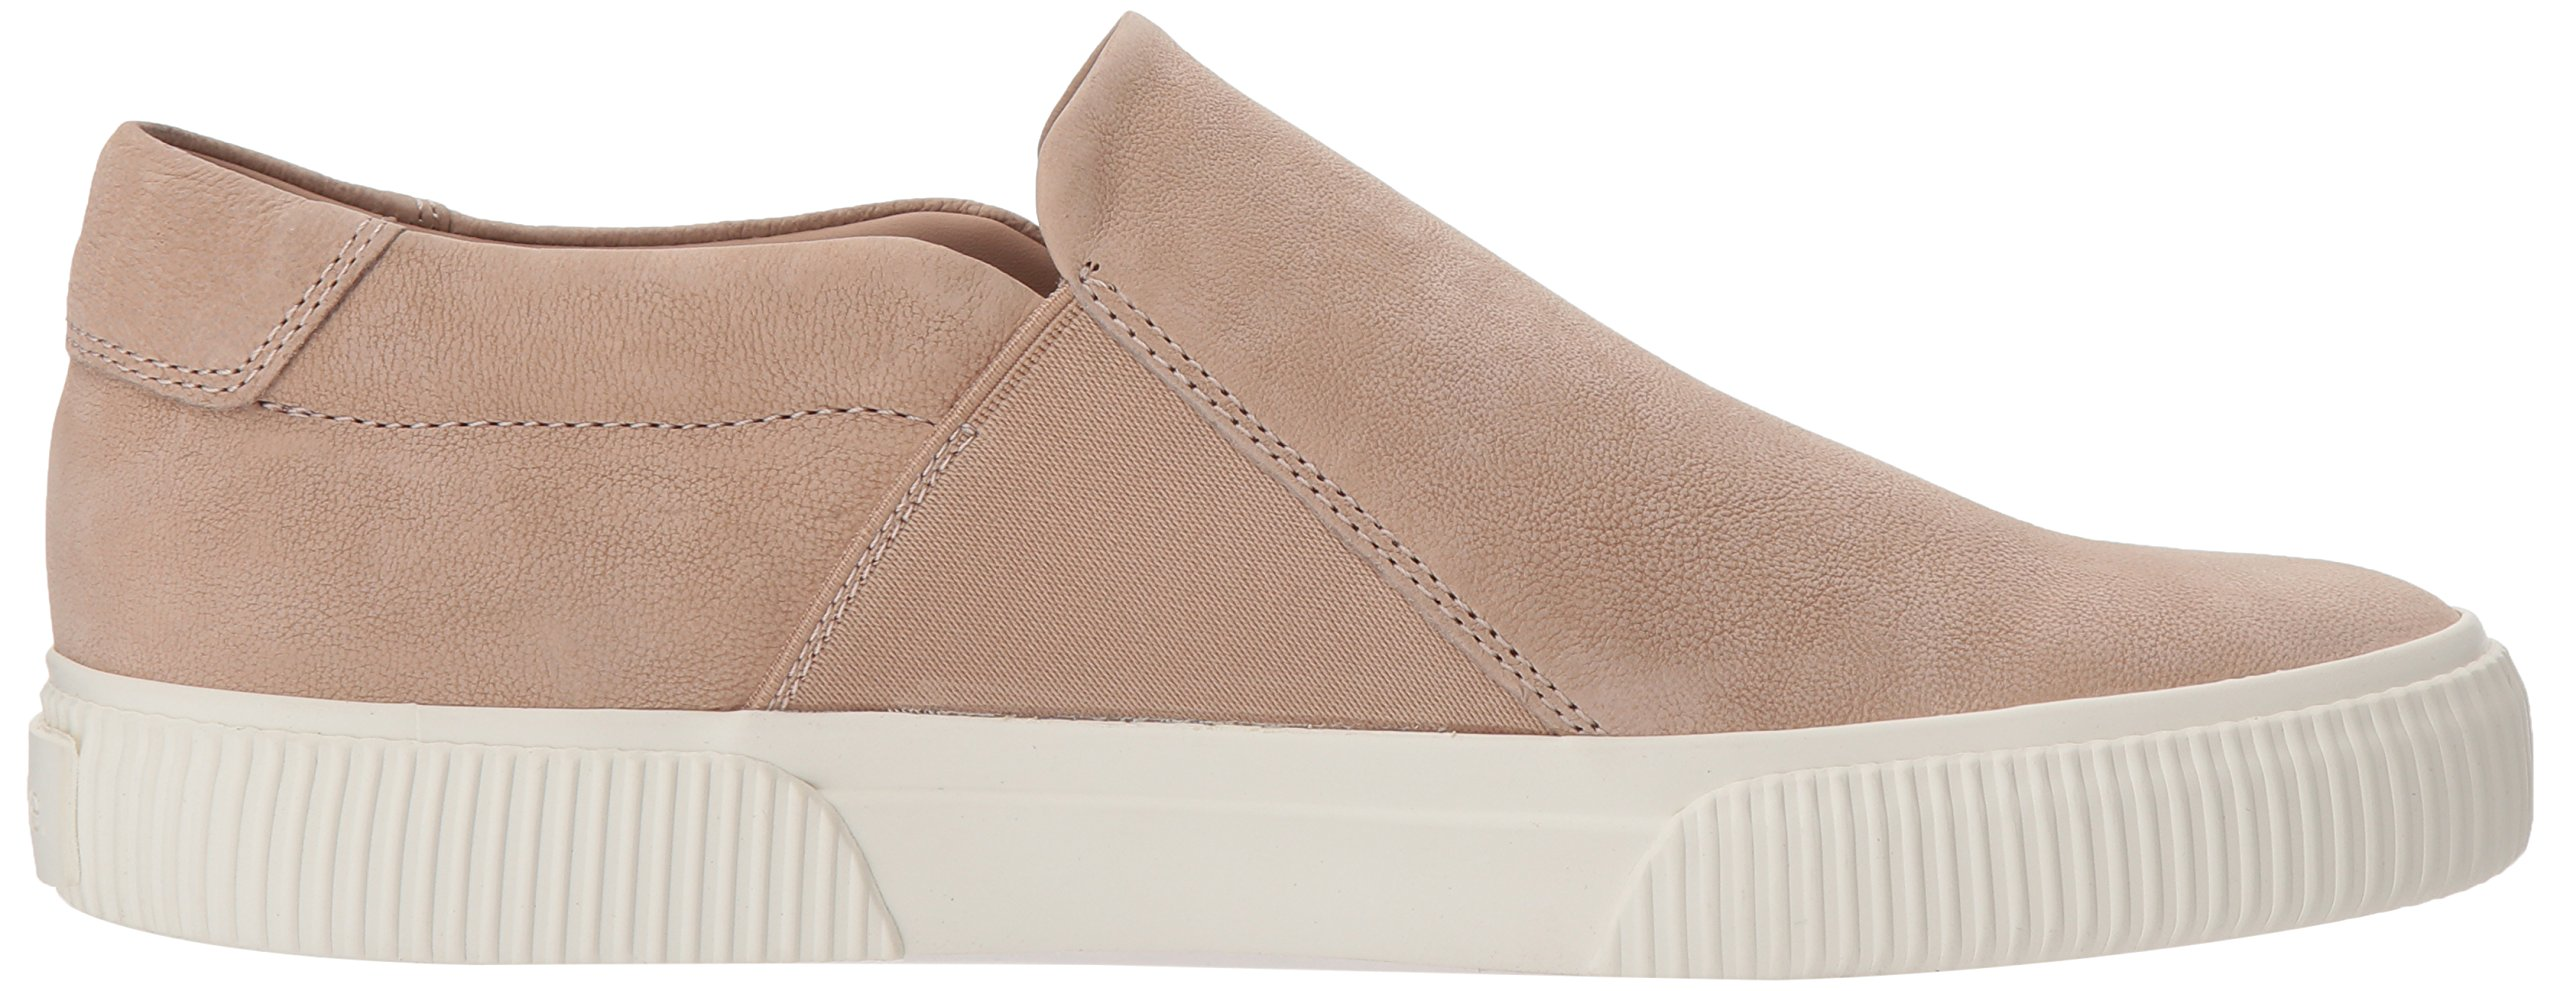 Vince Women's Knox Sneaker, Oatmeal, 6.5 Medium US by Vince (Image #6)